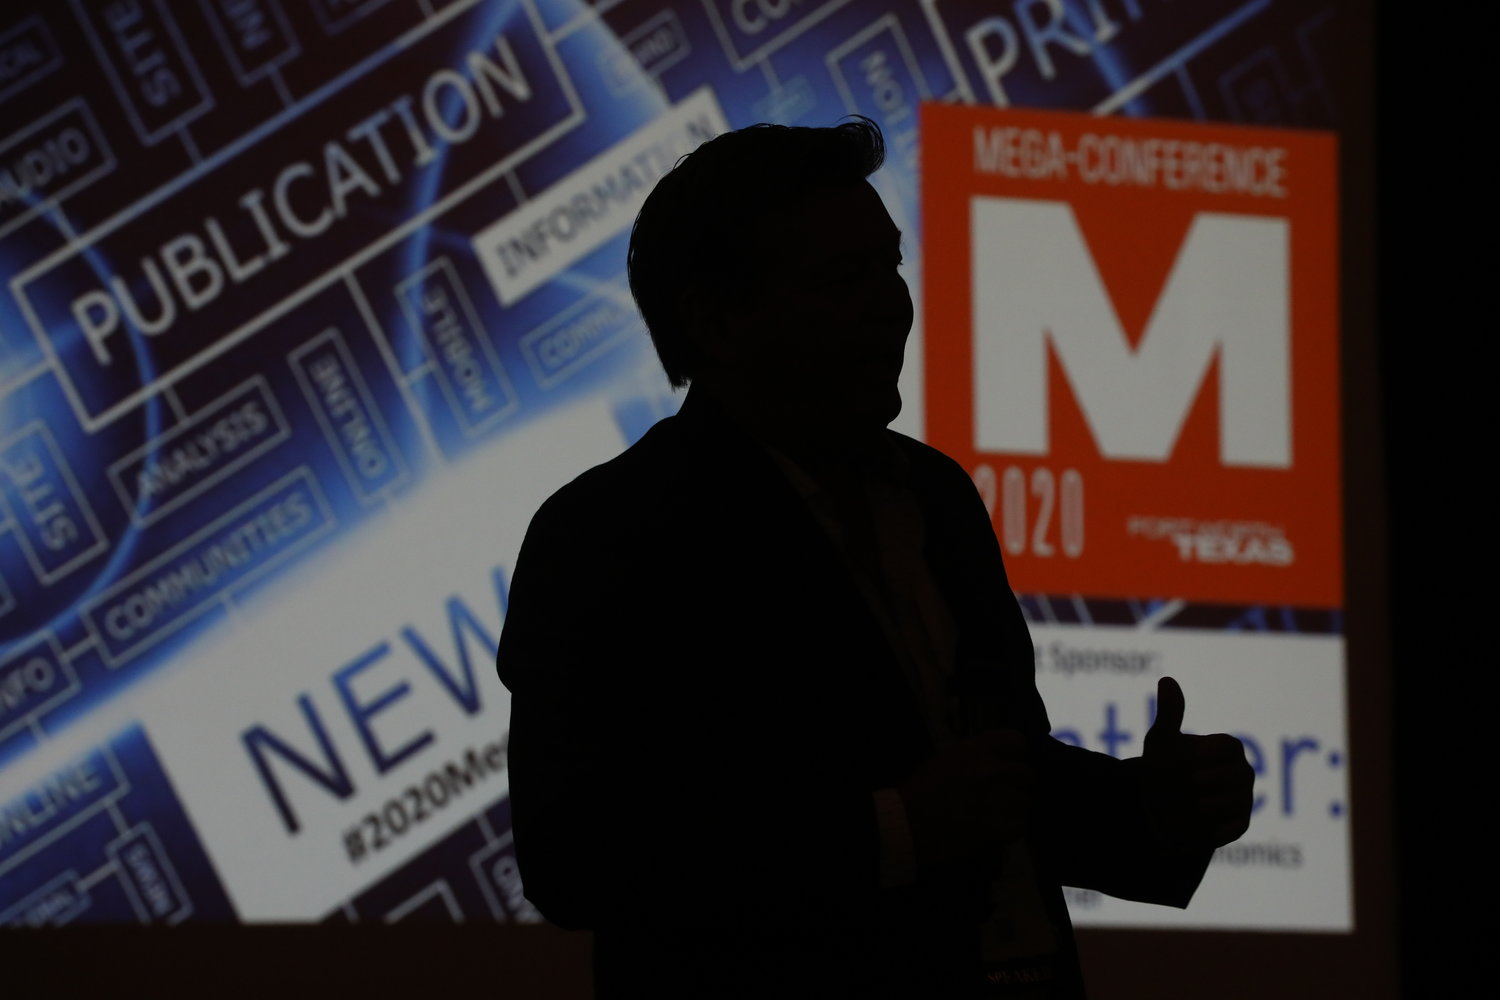 Tuesday photos of the 2020 Mega-Conference at the Omni Hotel in Fort Worth, Texas, Feb. 18, 2020. (Photo by Bob Booth)